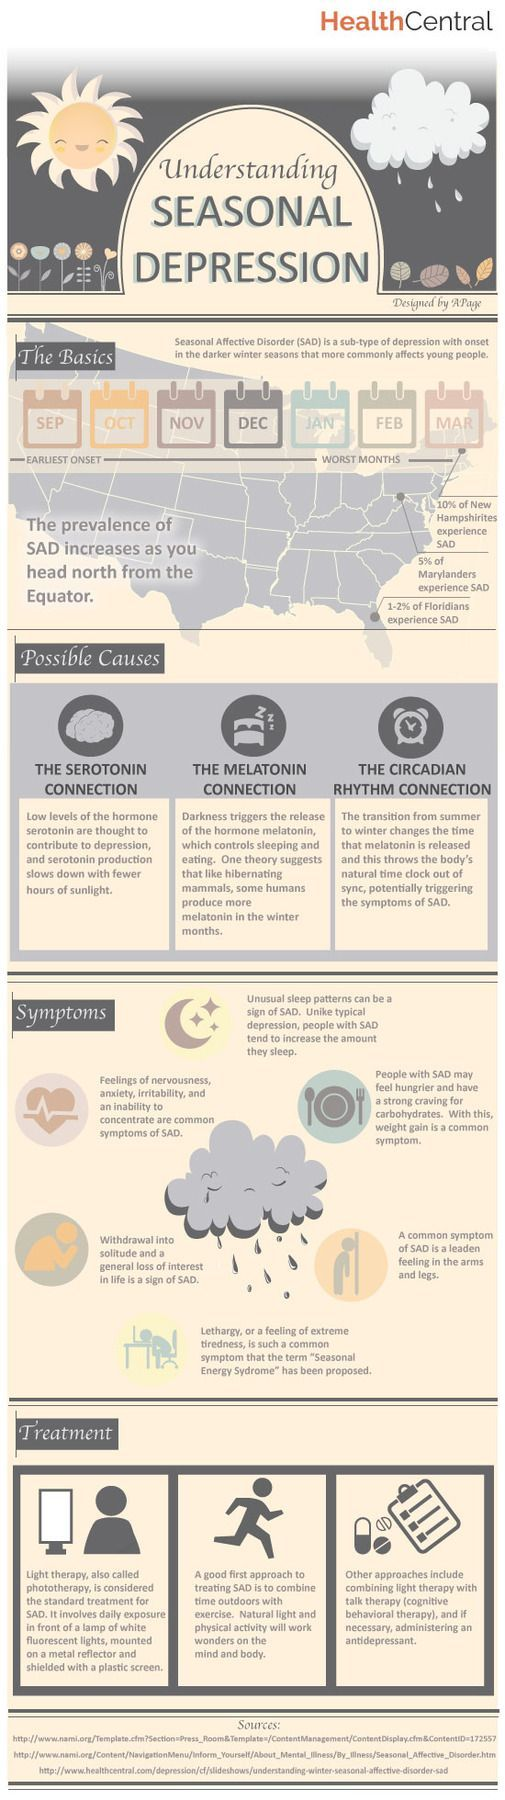 4 facts to recognize and treat seasonal #depression: http://www.healthcentral.com/depression/c/458275/174690/recognizing-infographic/?ap=2012 #mentalhealth @mentalhealtham